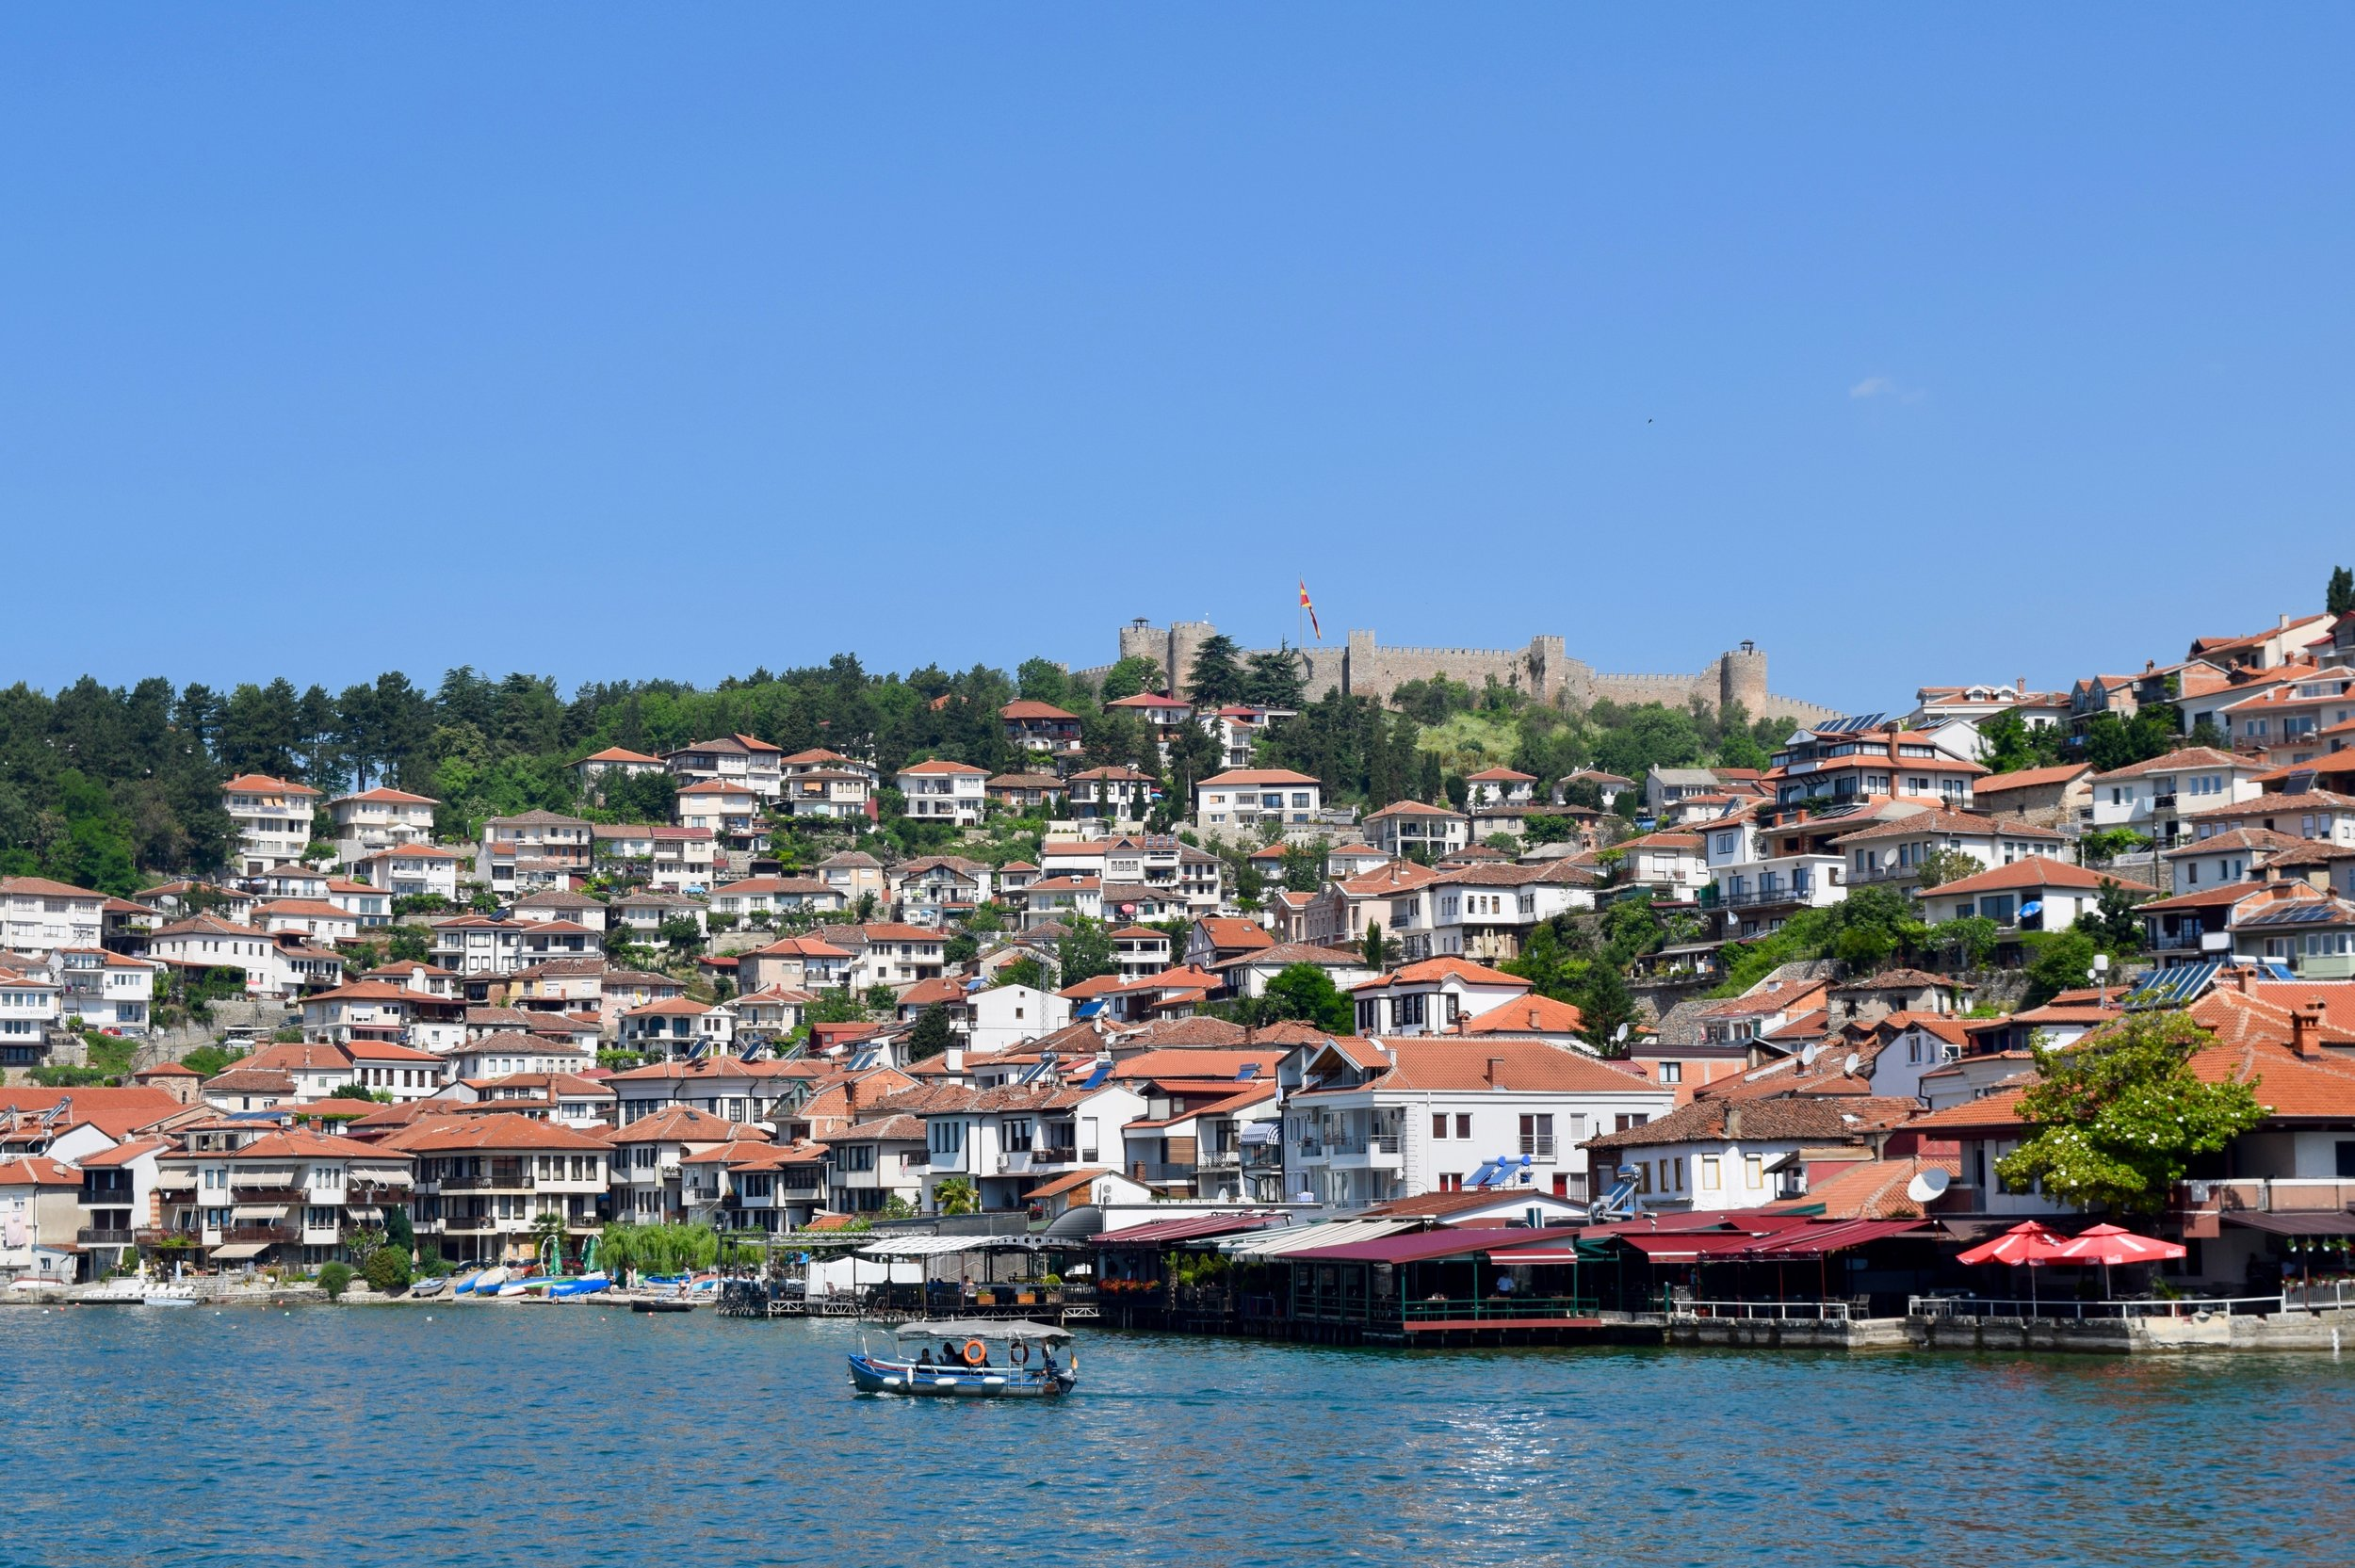 Ohrid and the fortress